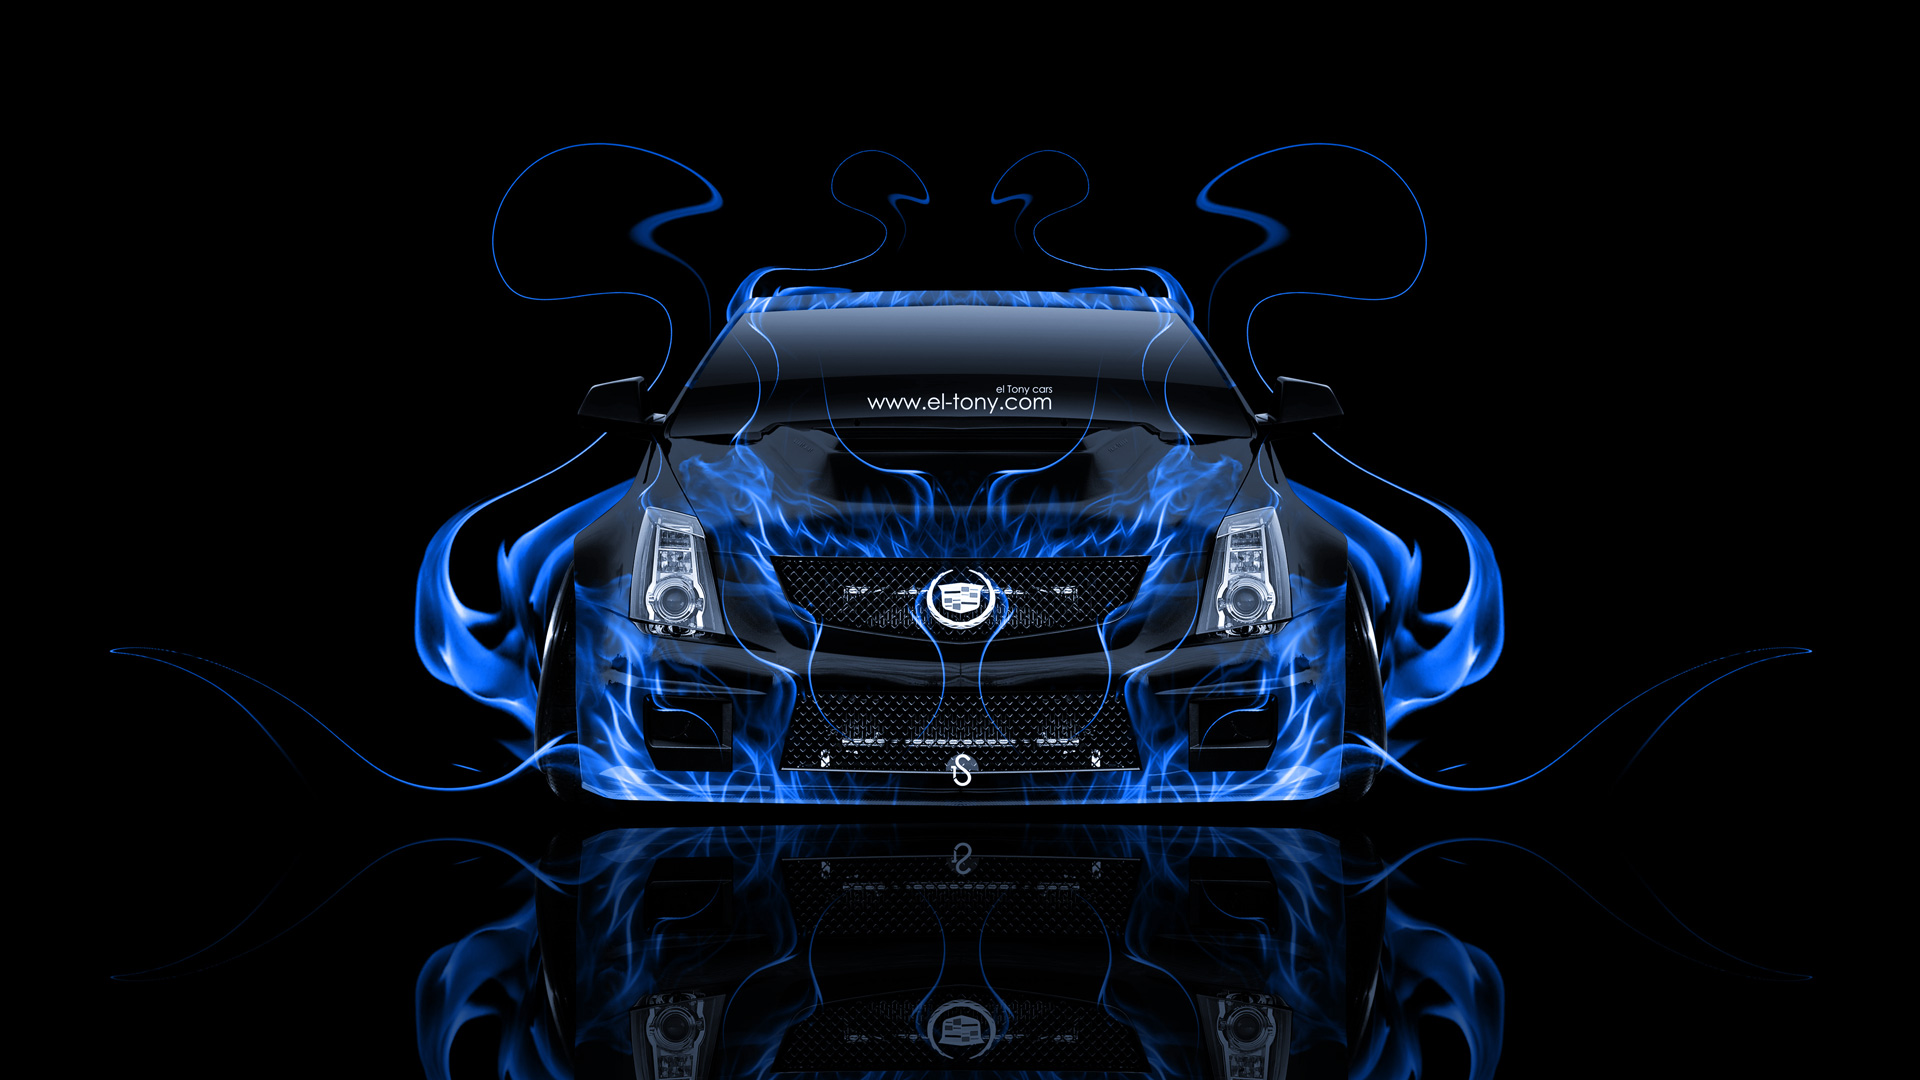 Cadillac Cts V Hennessey Tuning Front Fire Car 2014 El Tony